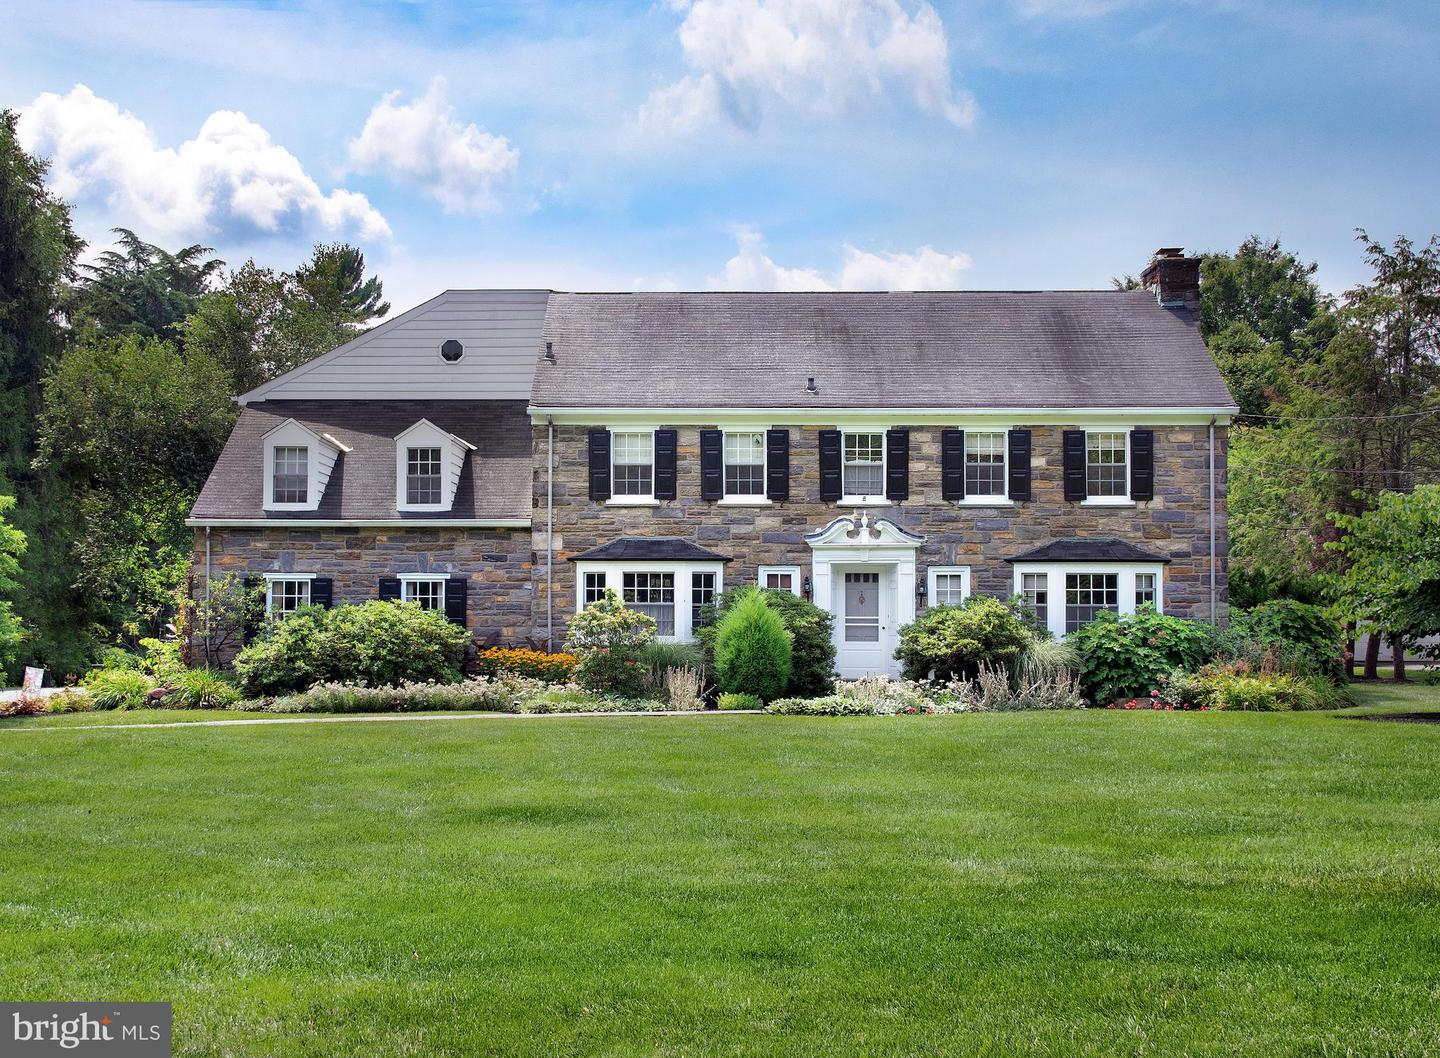 429 College Avenue Haverford, PA 19041